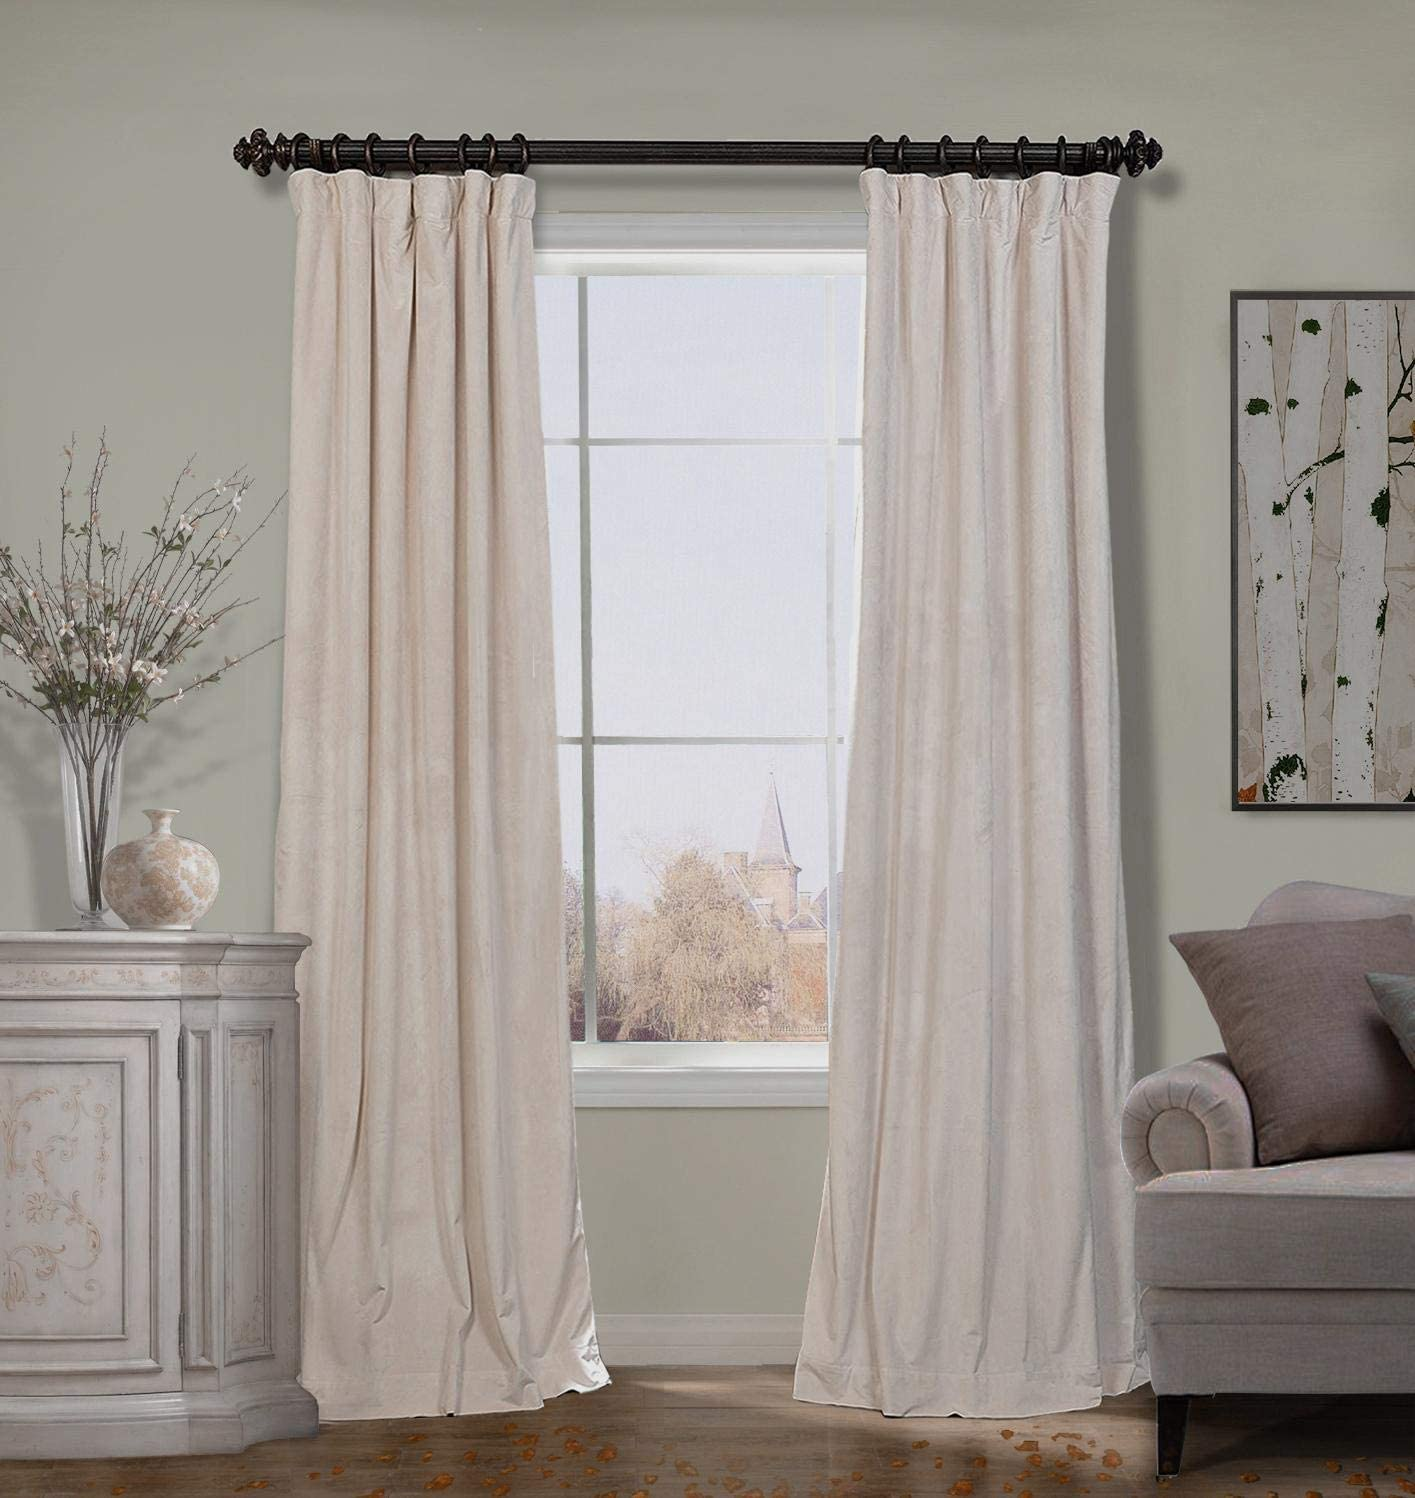 ChadMade Extra Wide Drape 100W x 120L Inch Solid Matt Luxury Heavyweight Velvet Curtain Drape with Blackout Lining Flat Hook or Ring Clip Heading for Track, Ivory 1 Panel